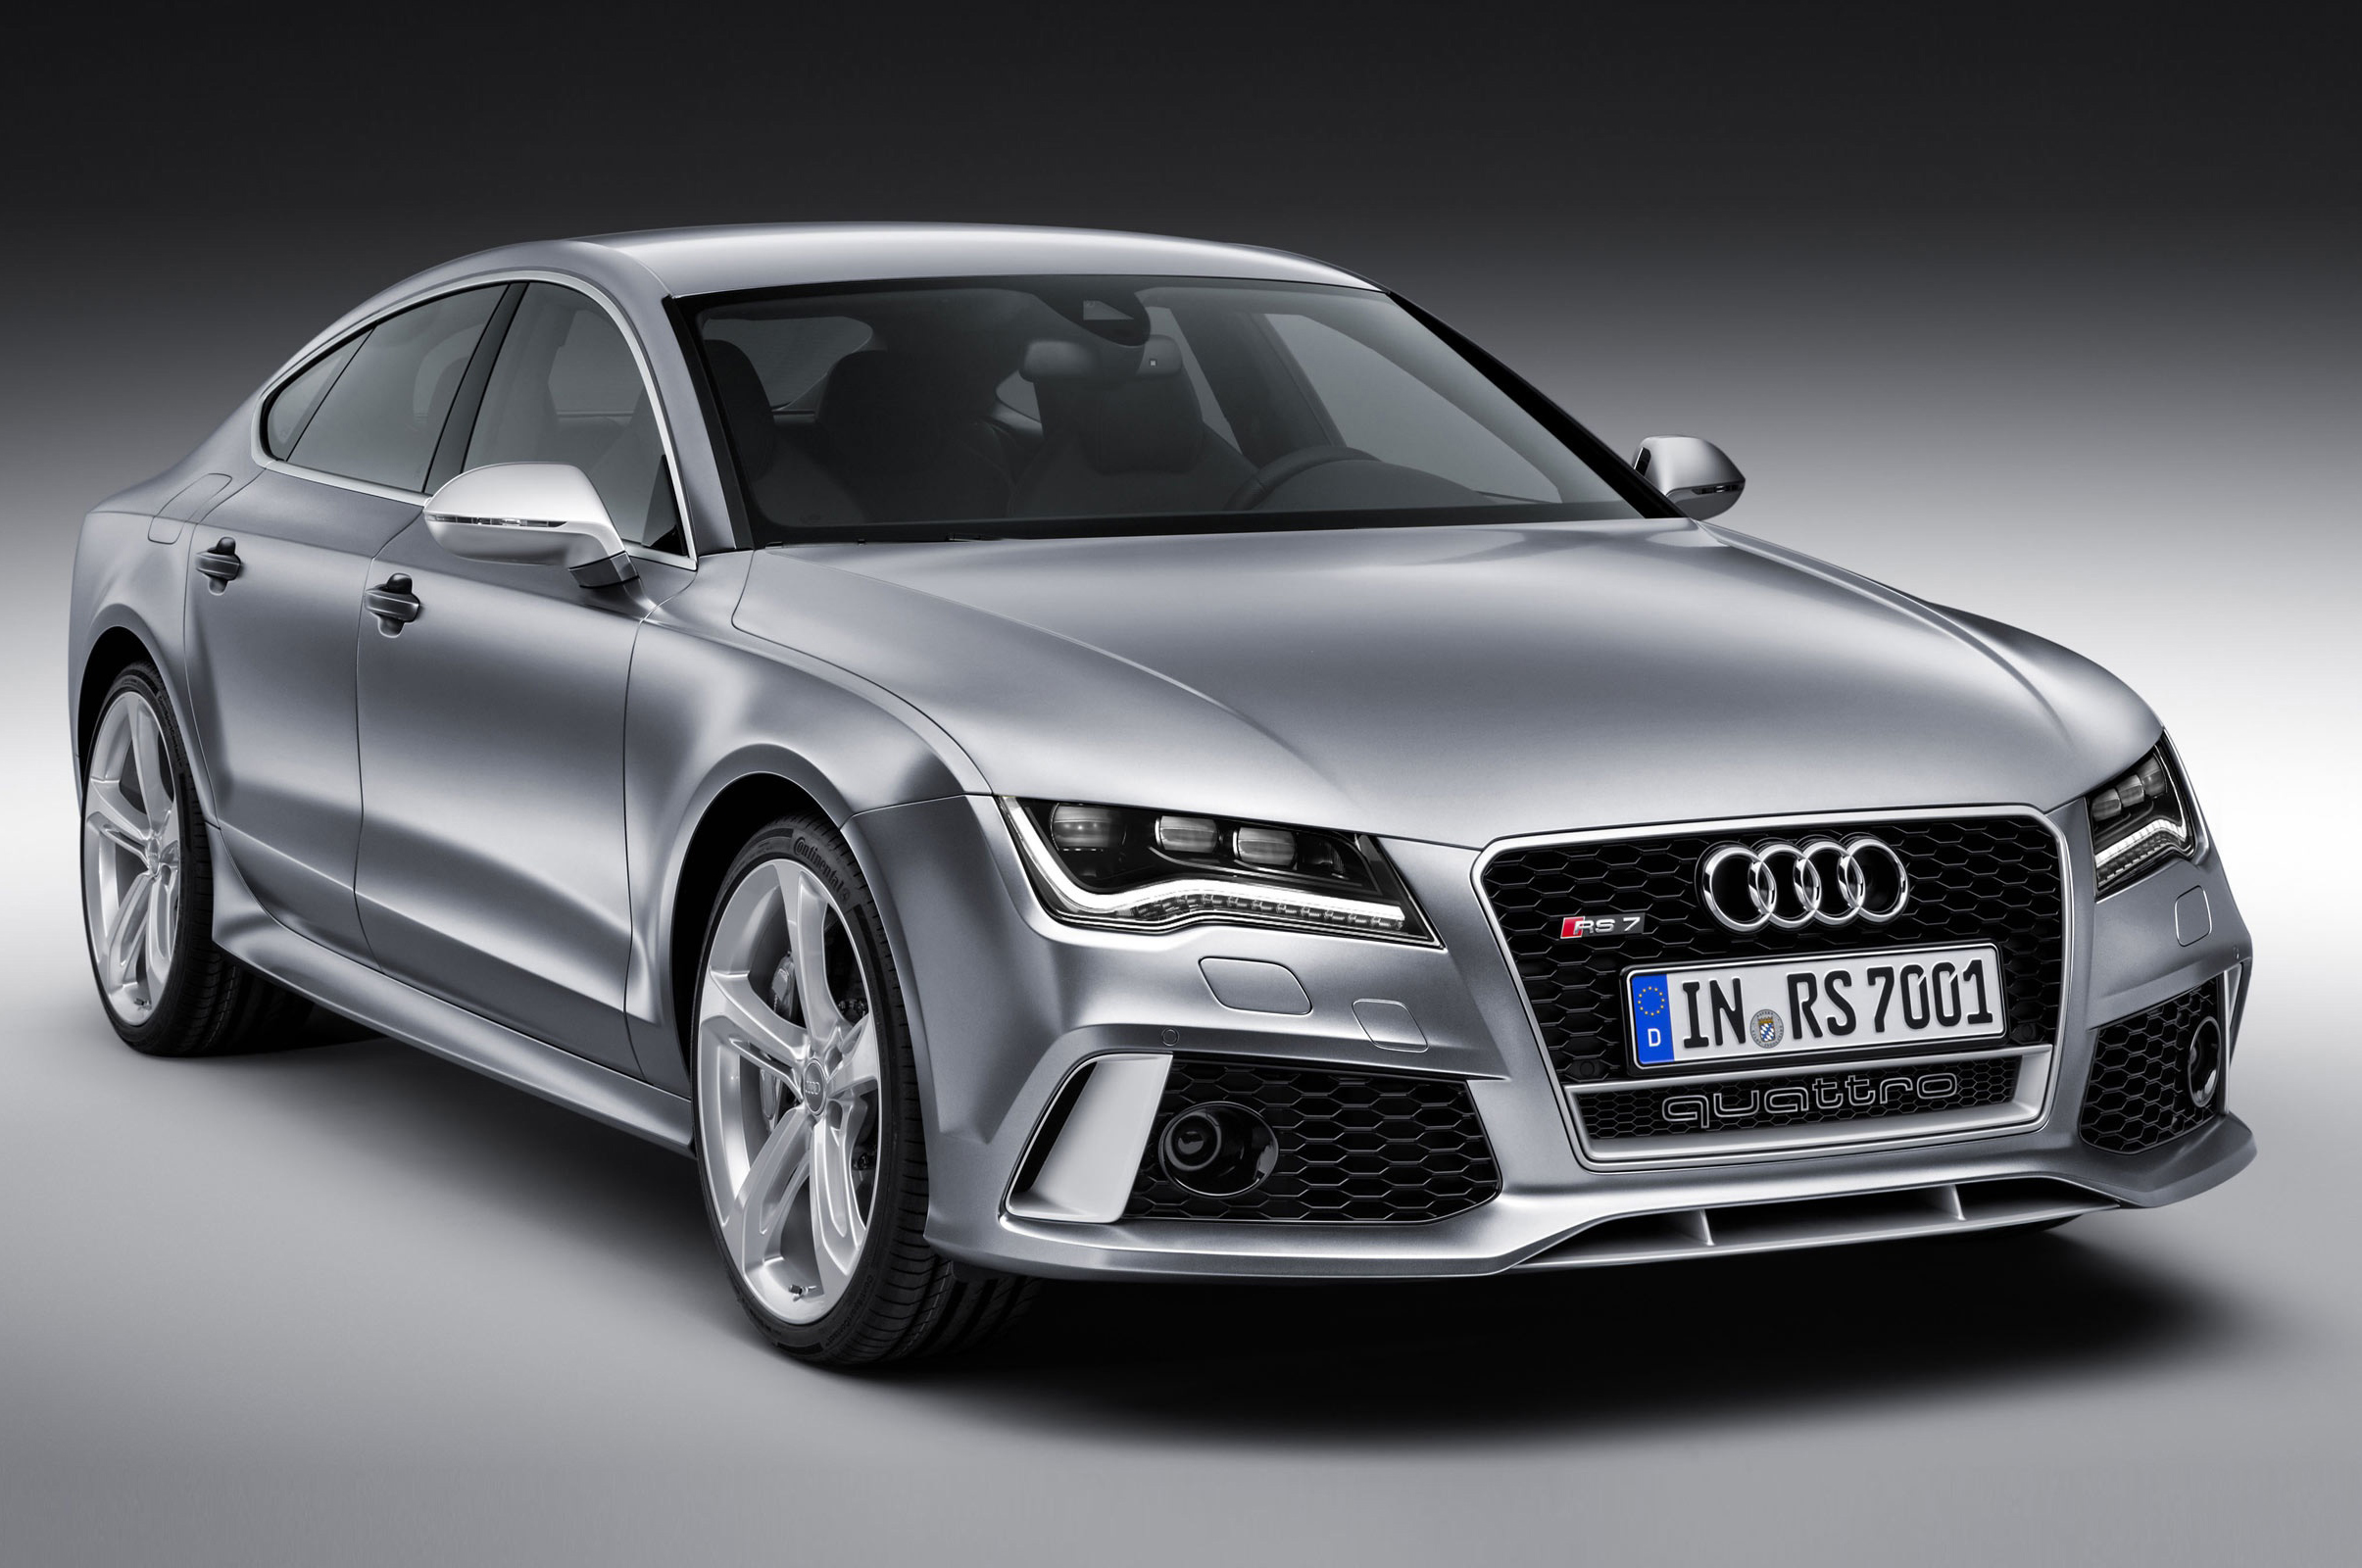 Silver Audi Front Look 482.05 Kb